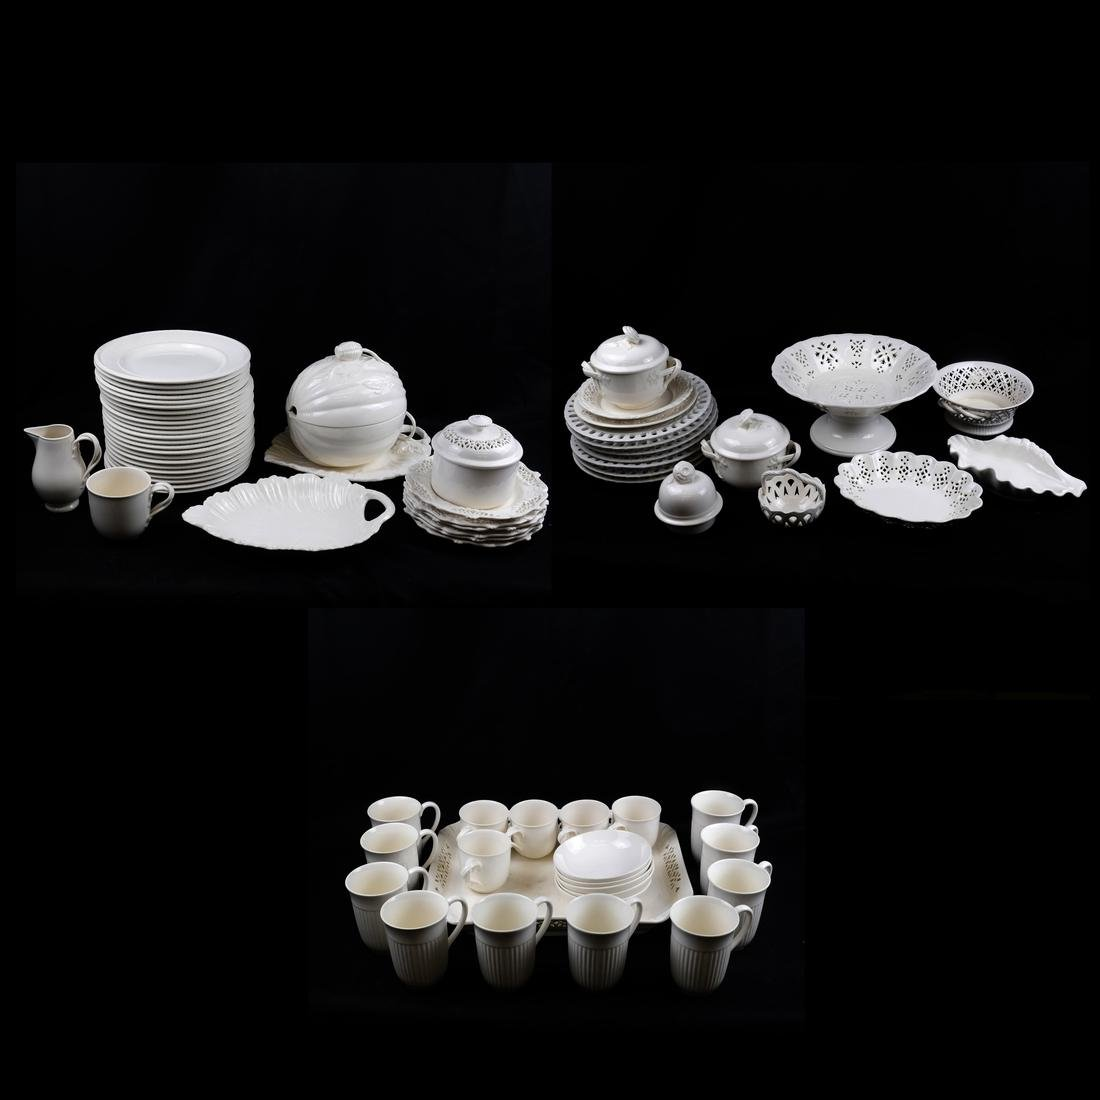 70-Pc English Assembled Ceramic Dishes